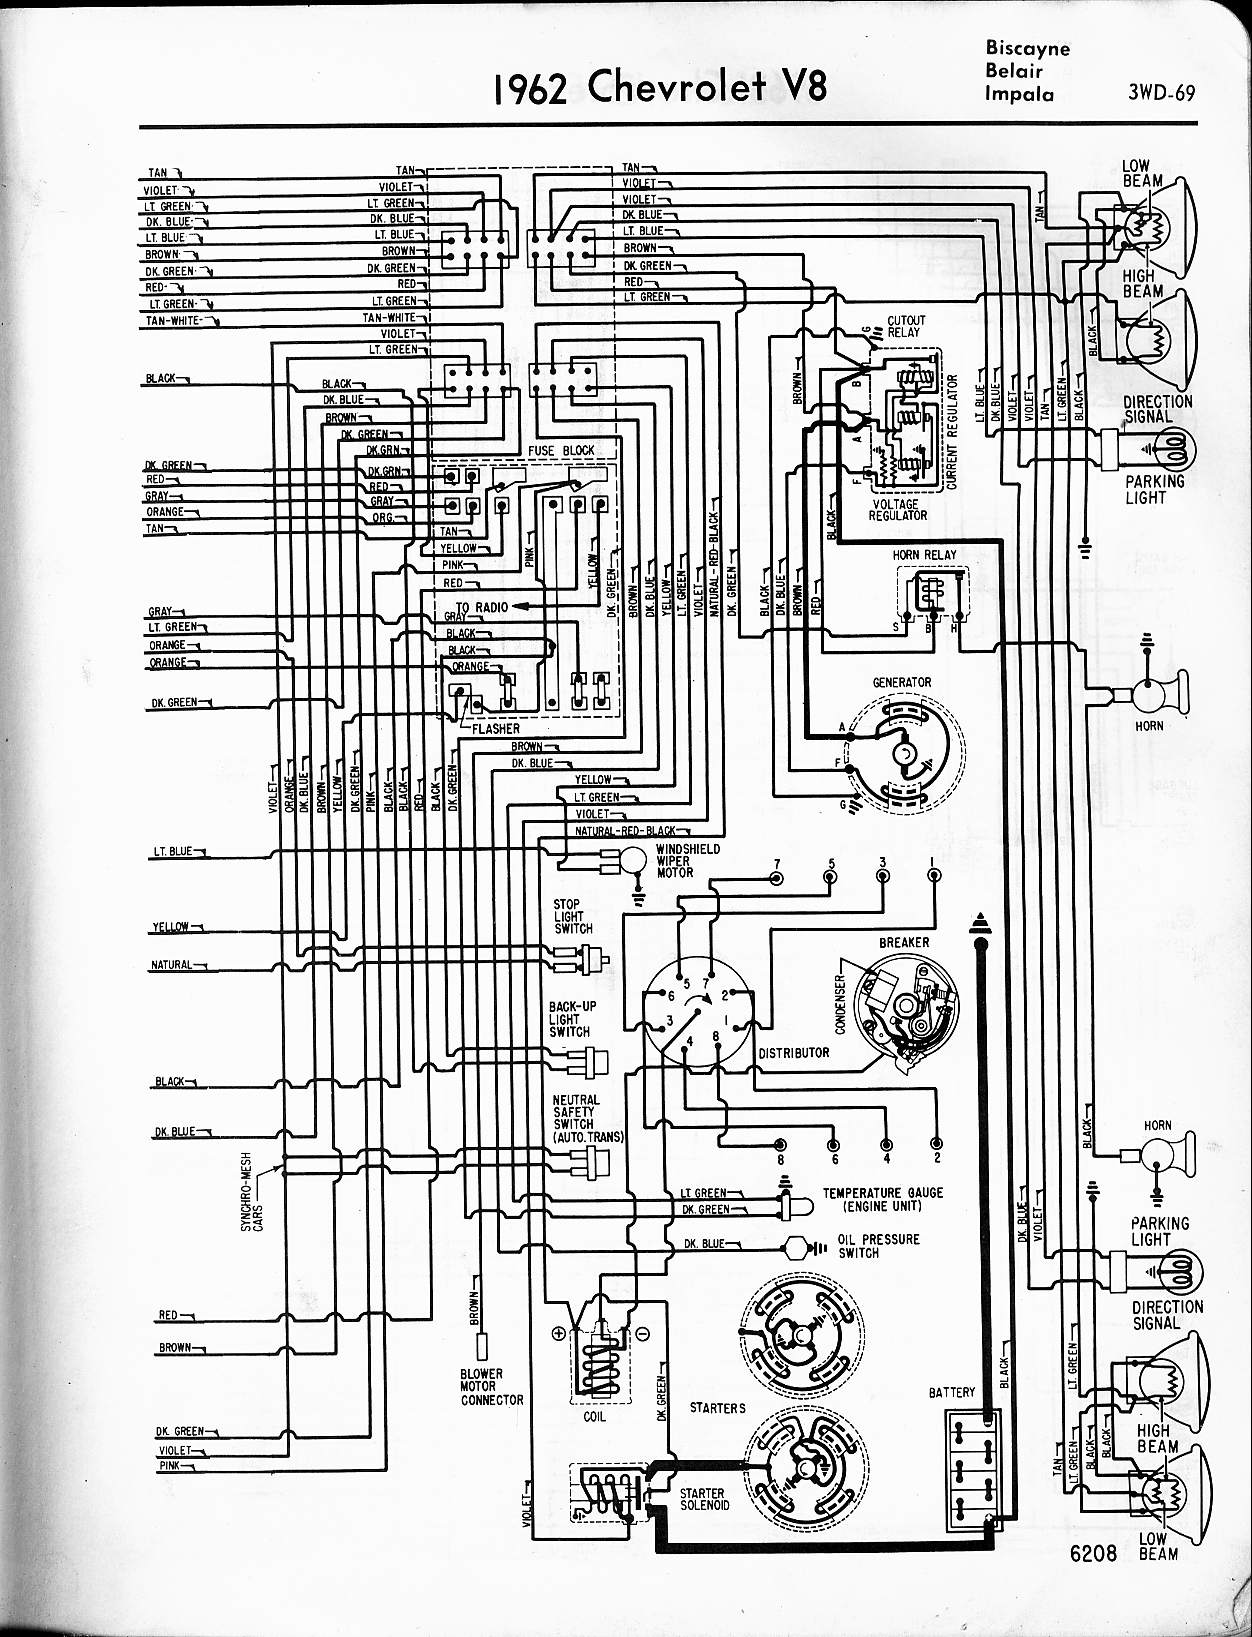 MWireChev62_3WD 069 1962 chevrolet wiring diagram manual chevytalk free 1964 impala wiring diagram at fashall.co